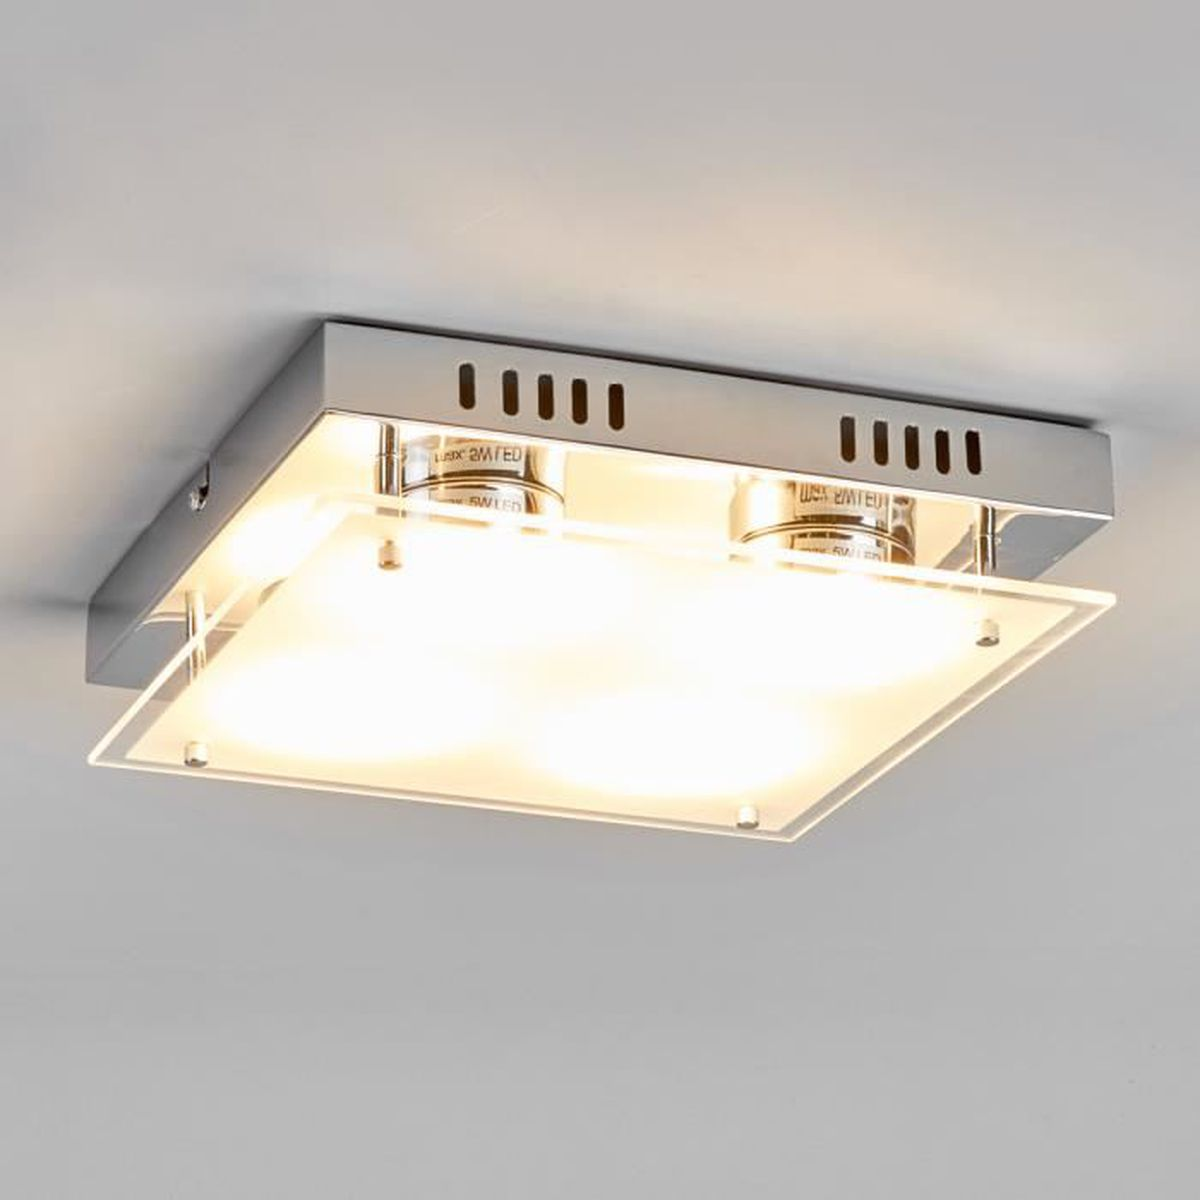 Plafonnier led carre achat vente plafonnier led carre for Plafonnier design pas cher